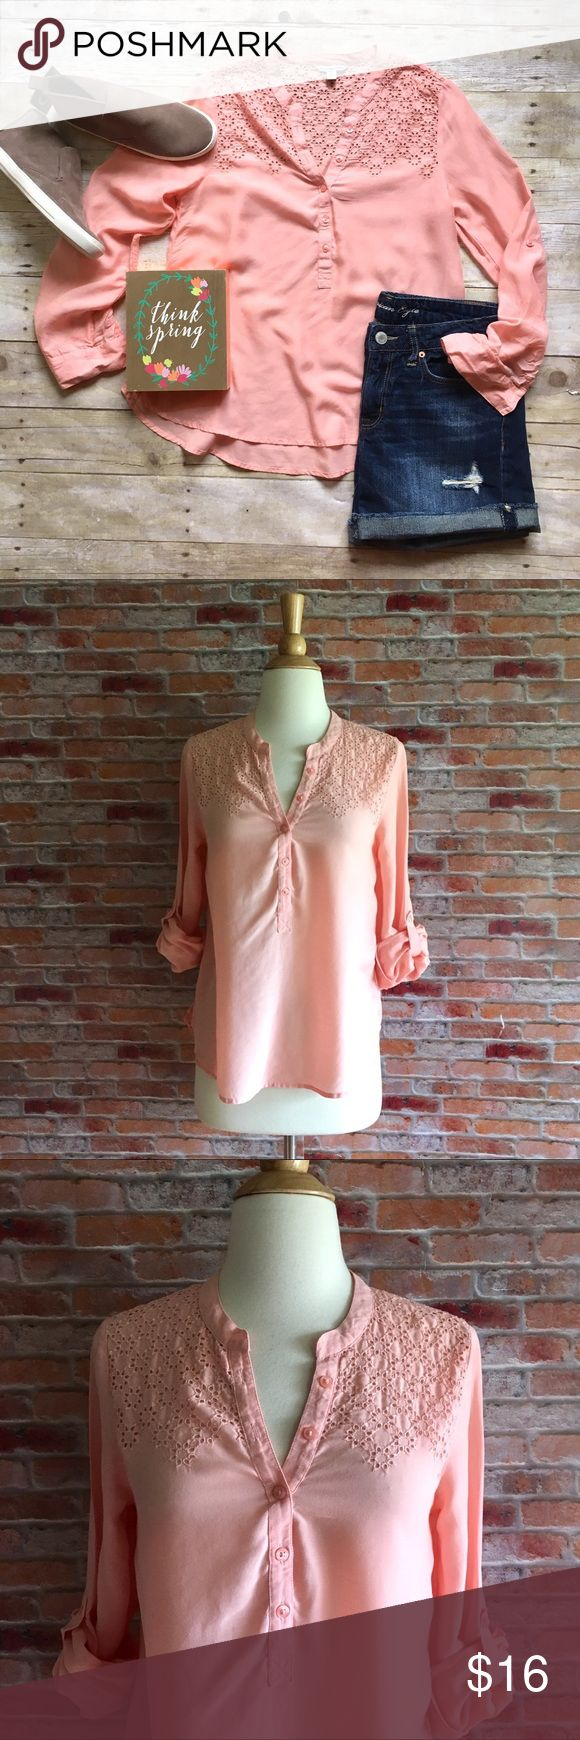 """American Eagle peachy pink eyelet panel top Peach lightweight top featuring 1/2 button front, eyelet top panel, and roll tab button sleeves. In excellent condition. 24""""L. 17"""" bust laying flat. Rayon. Size small. *shorts & blazer pictured are also for sale in my closet, buy the look and save! American Eagle Outfitters Tops"""